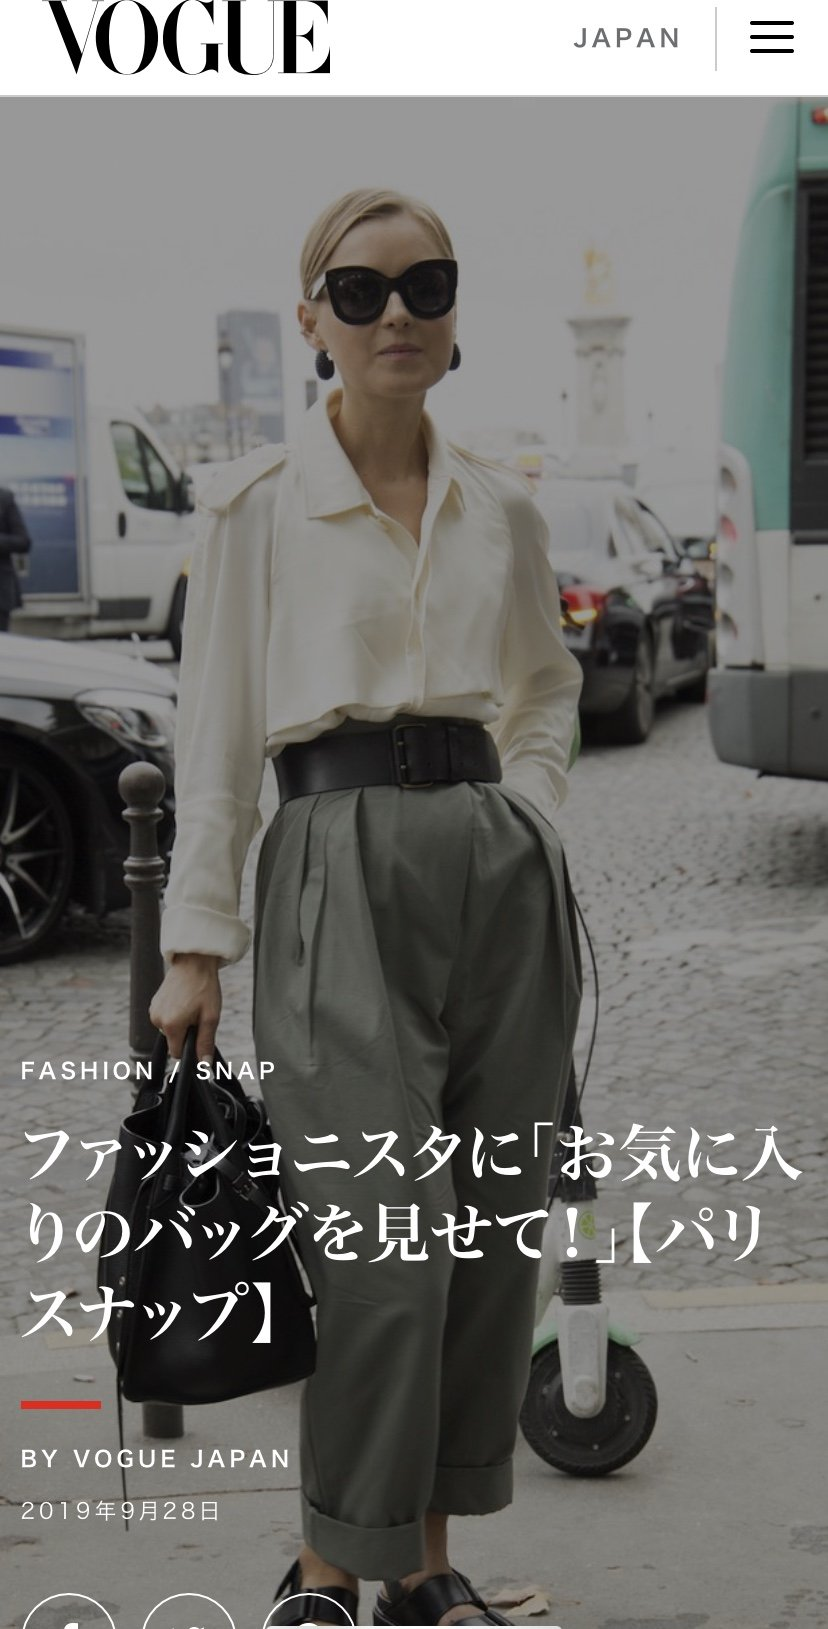 Vogue Japan – Fashion Snap | 03.10.2019